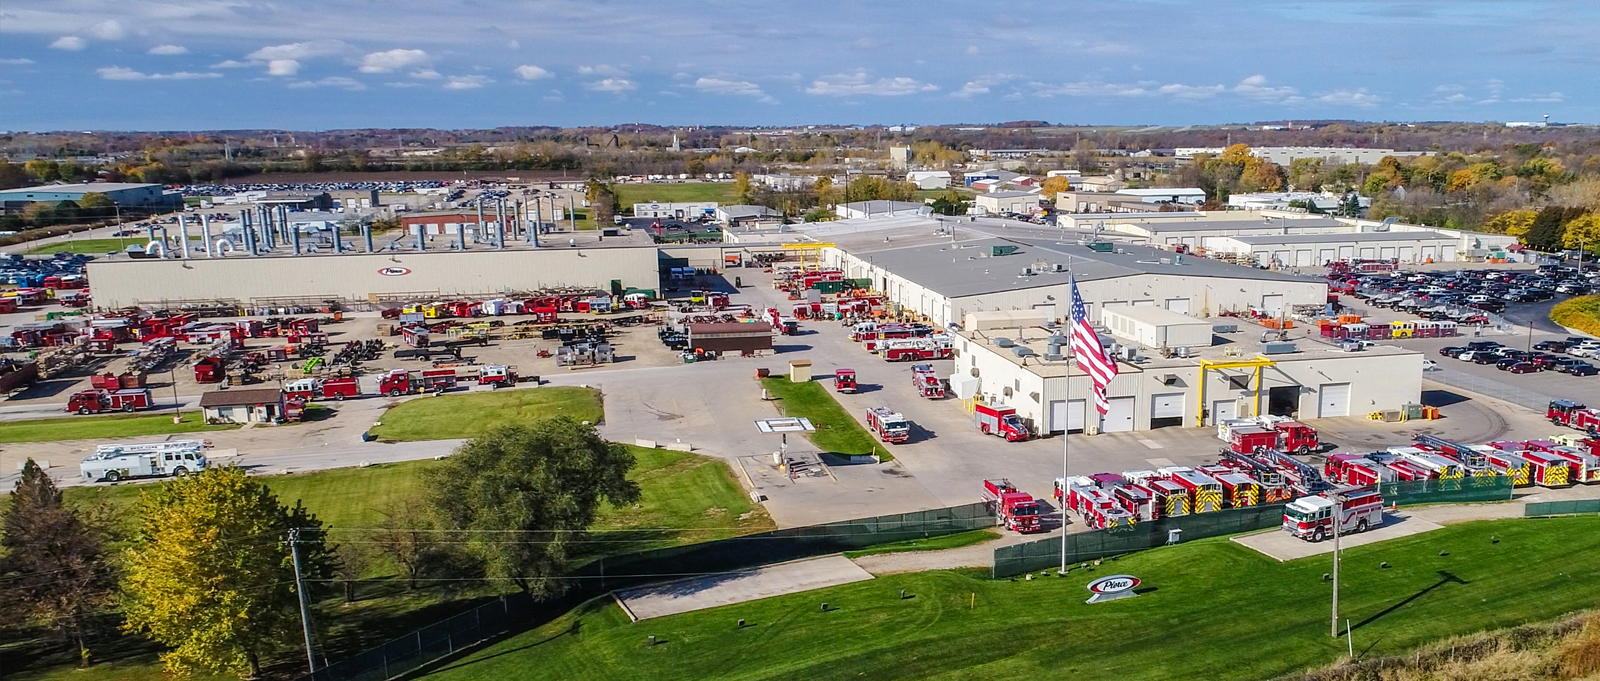 An aerial view of Pierce Manufacturing facilities in Appleton Wisconsin.